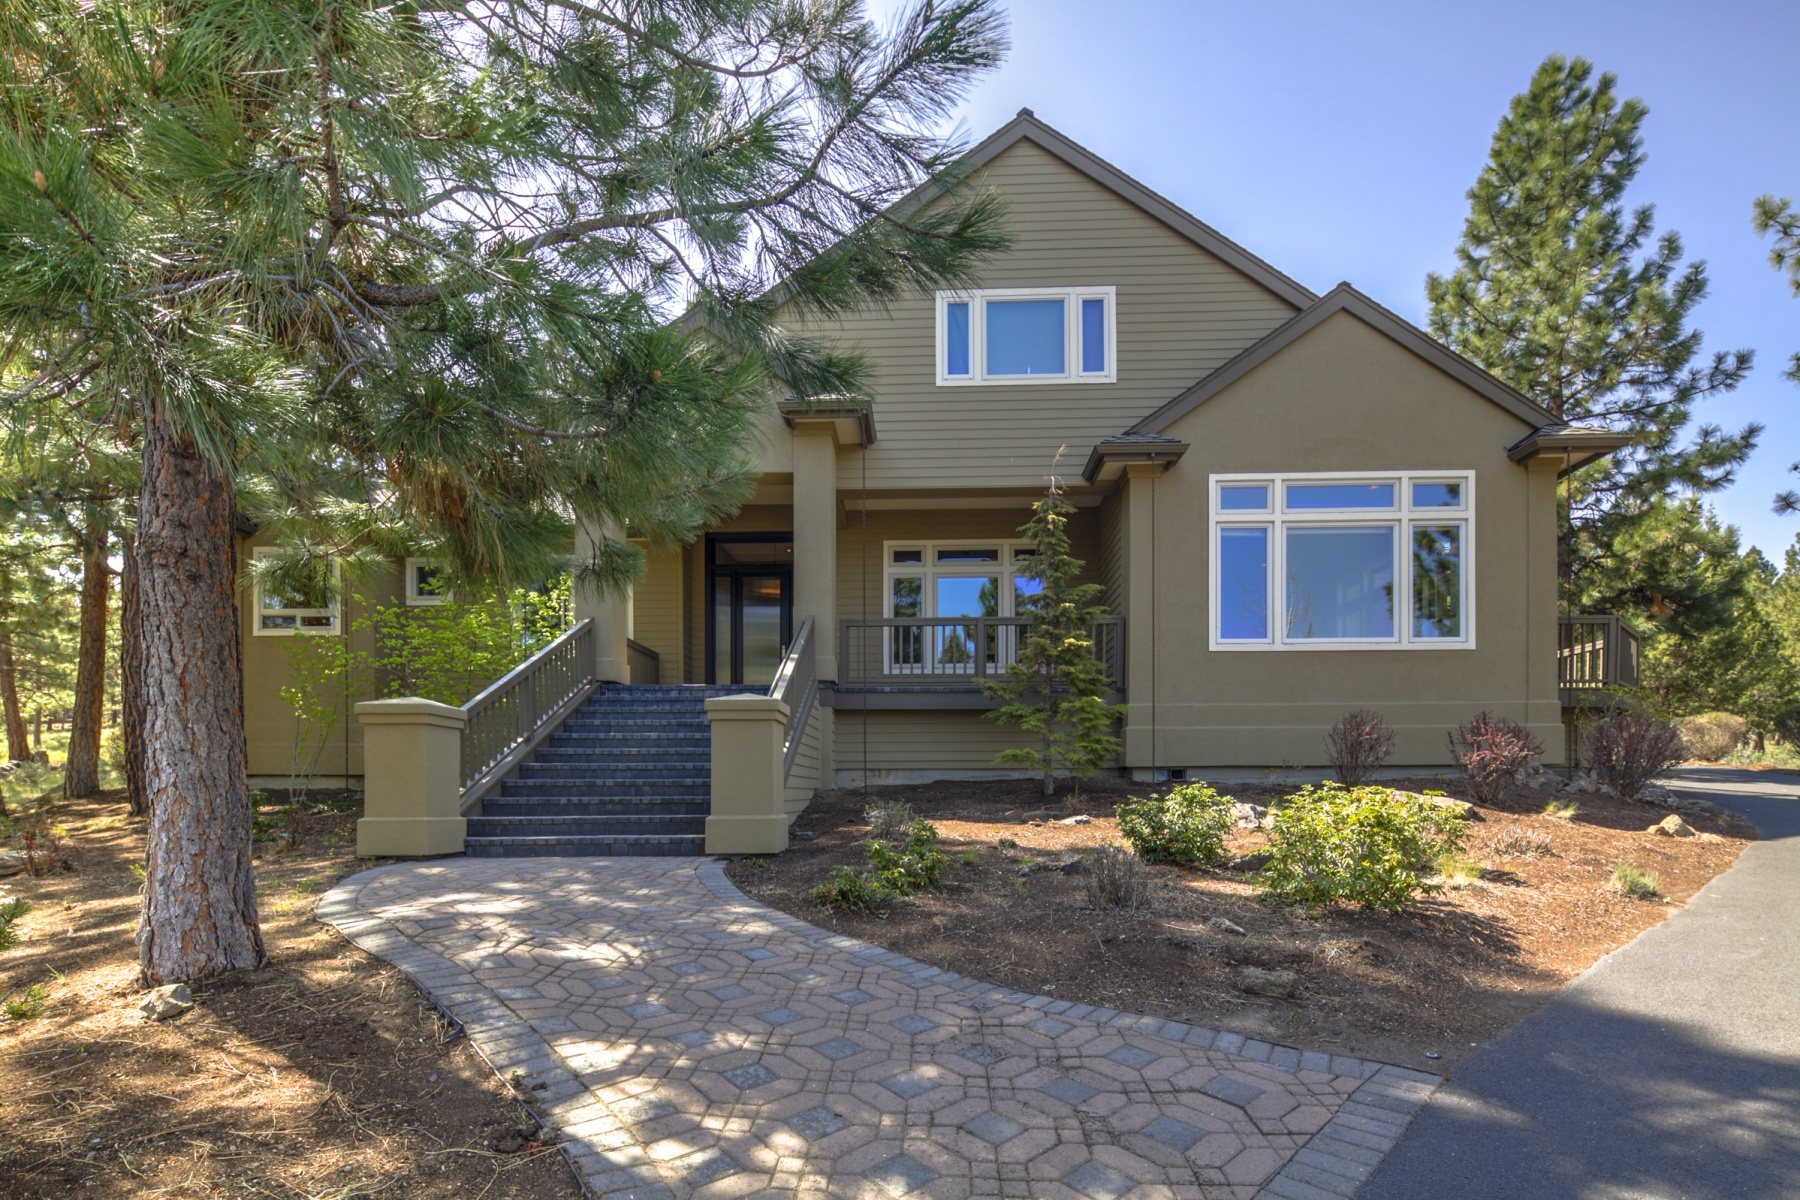 Single Family Home for Sale at Awbrey Butte 1805 NW Remarkable Dr Bend, Oregon 97701 United States